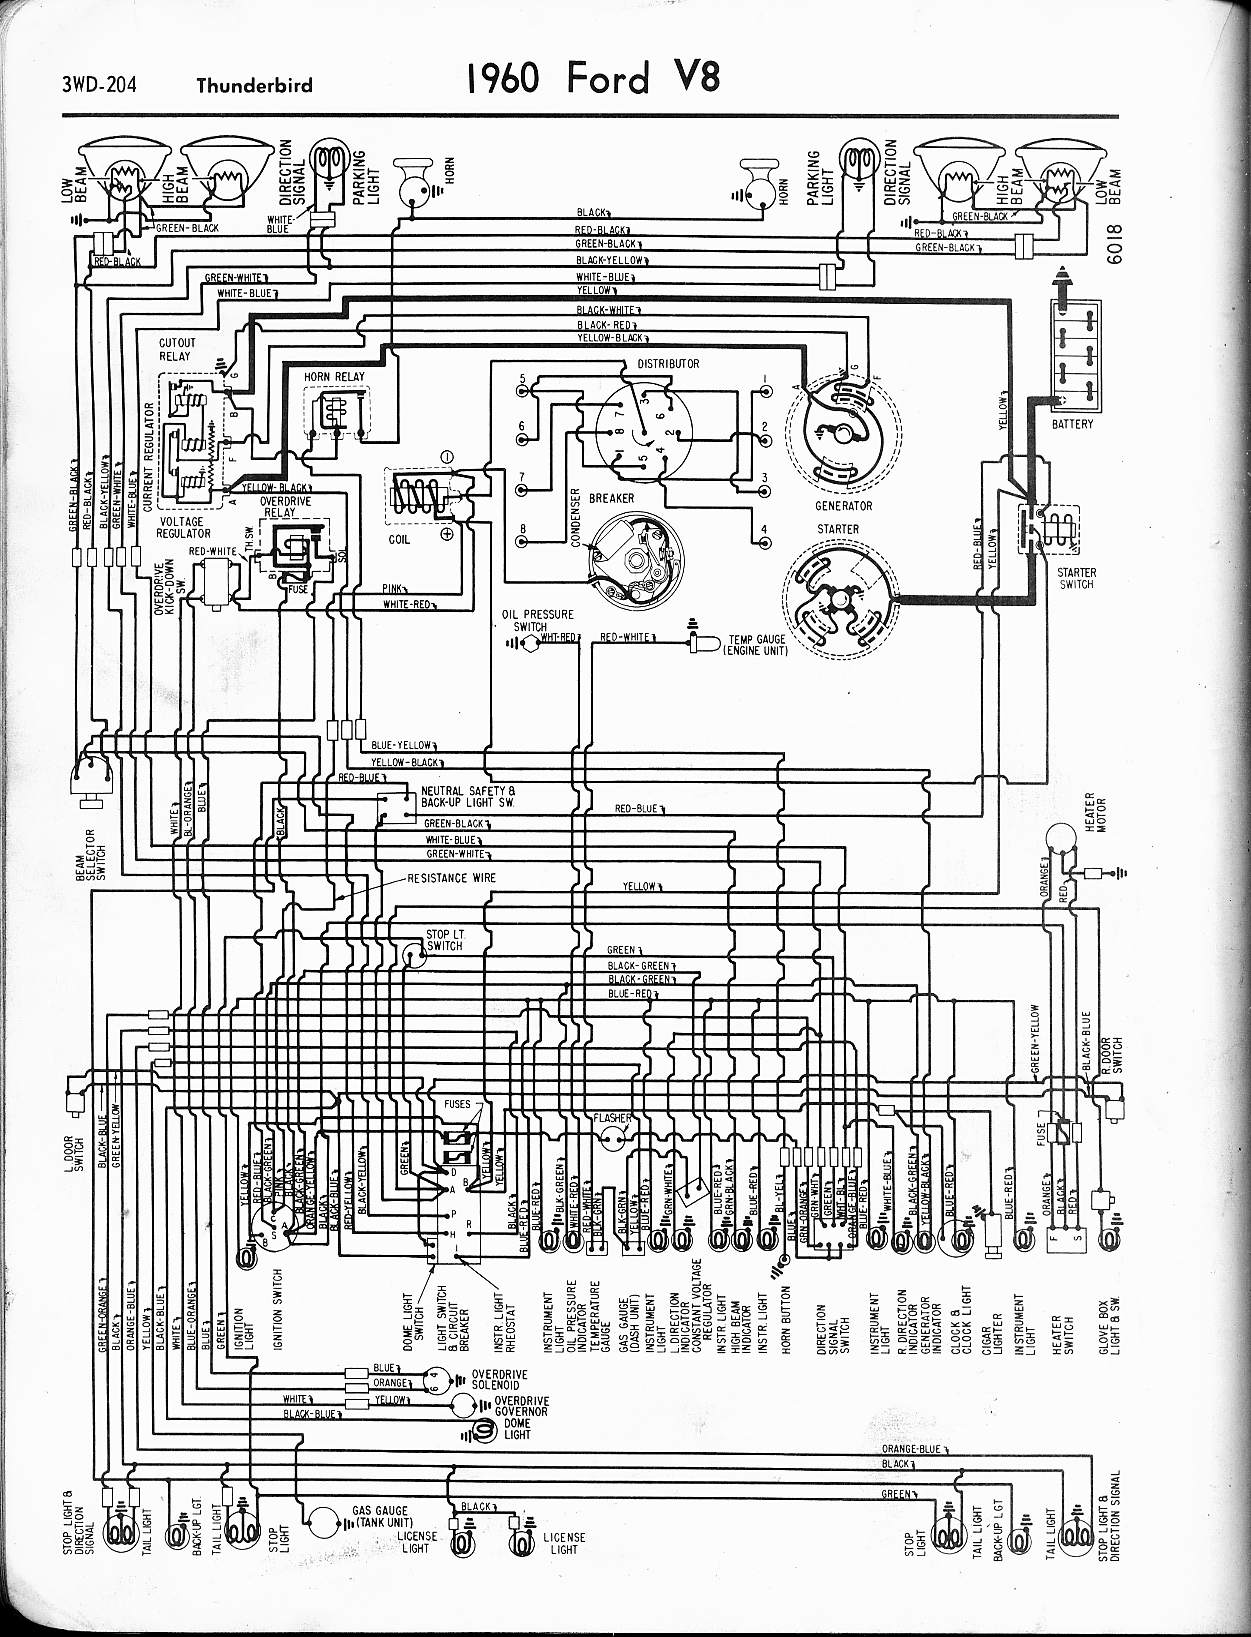 MWire5765 204 57 t bird wiring diagram 57 wiring diagrams instruction 1959 ford f100 wiring diagram at bayanpartner.co